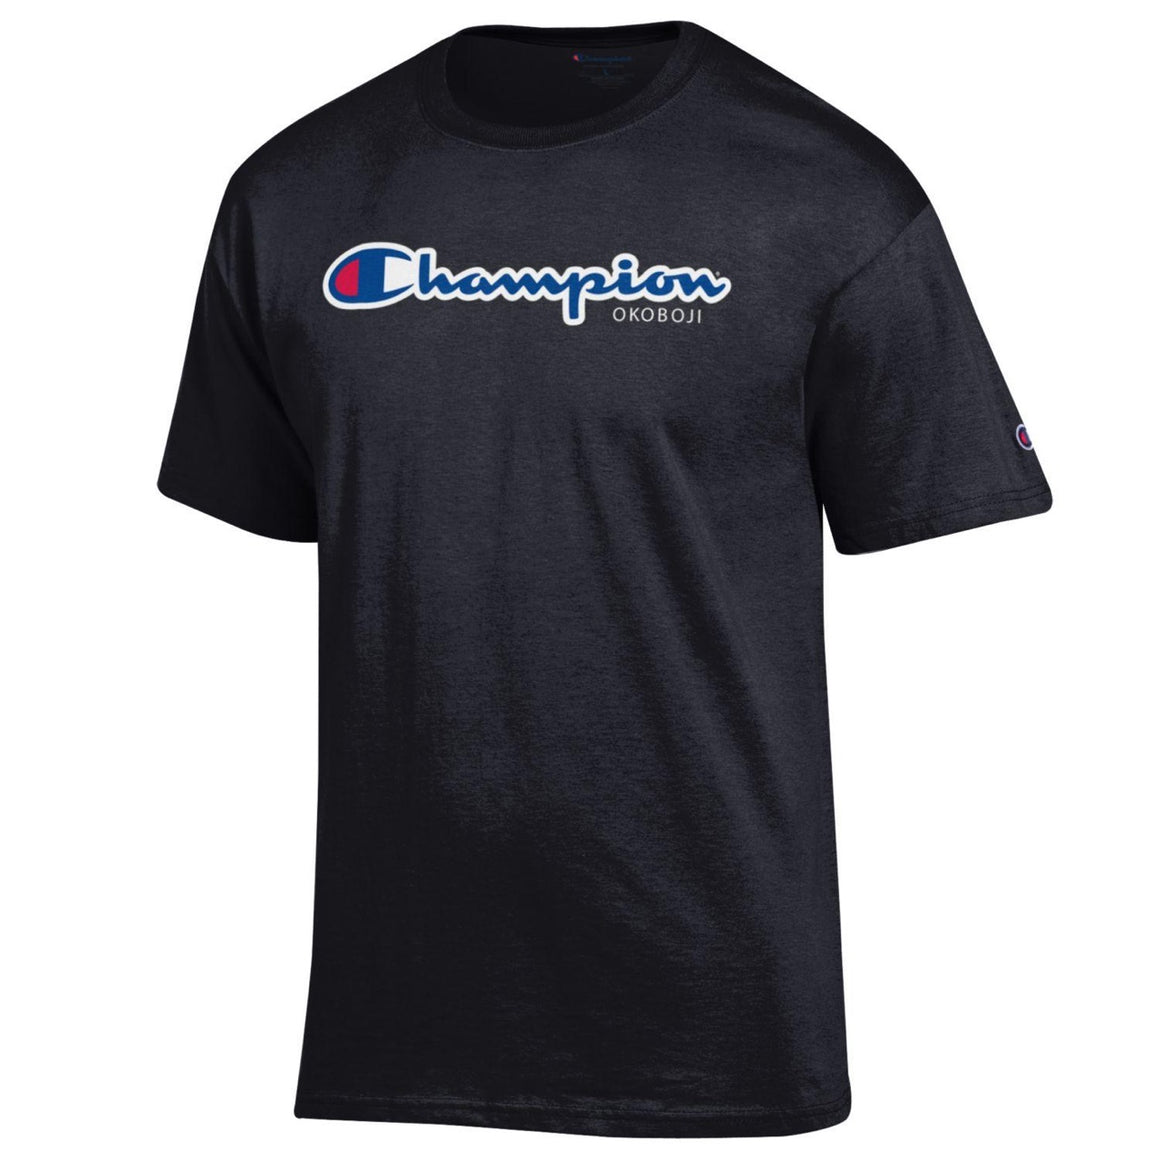 Champion® of Okoboji - Cool Black